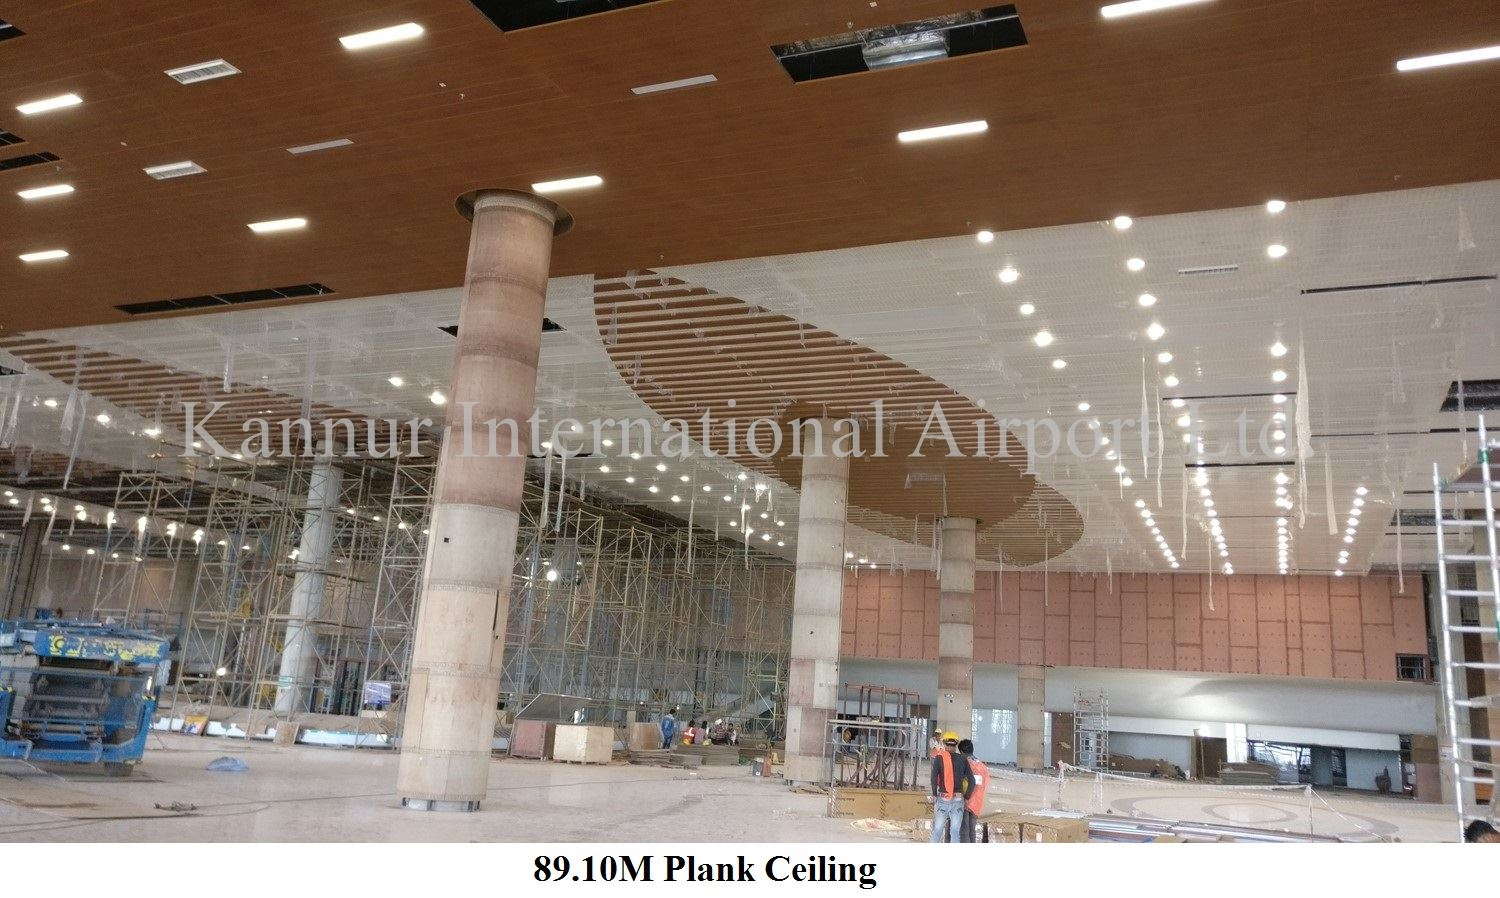 89.10M Plank Ceiling